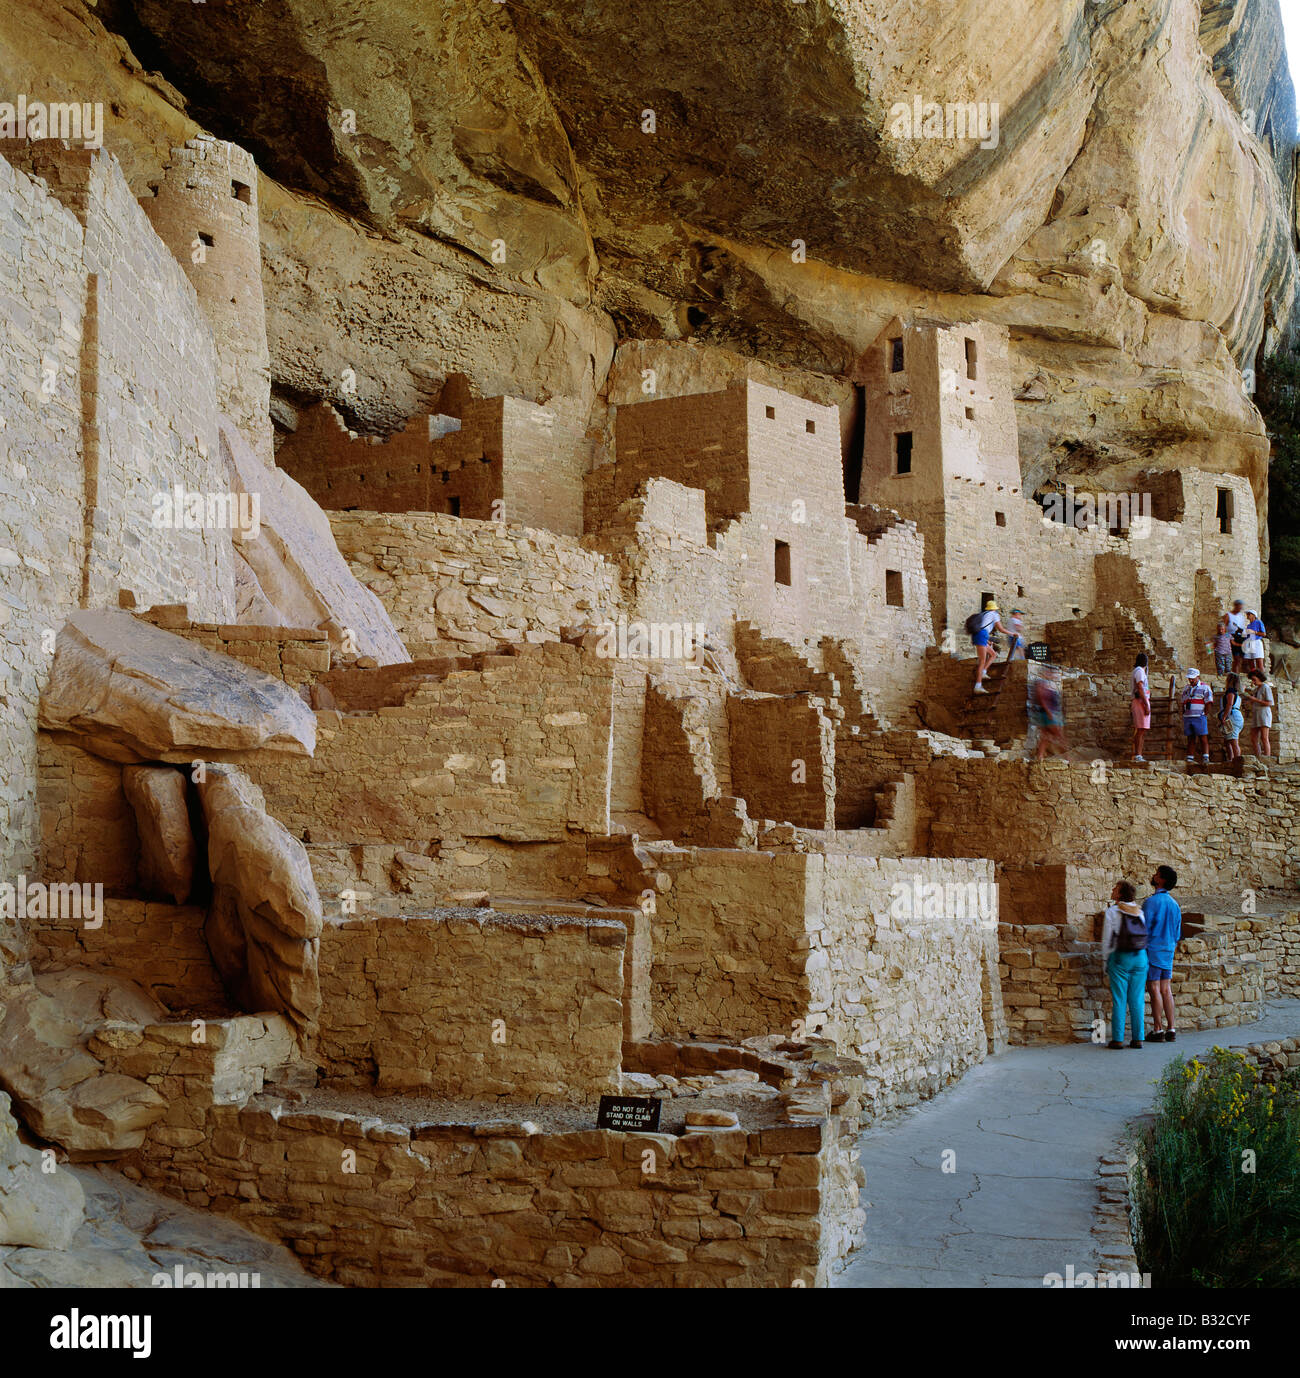 CLIFF PALACE, THE LARGEST ANASAZI CLIFF DWELLING IN MESA VERDE NATIONAL PARK, NEW MEXICO, USA - Stock Image